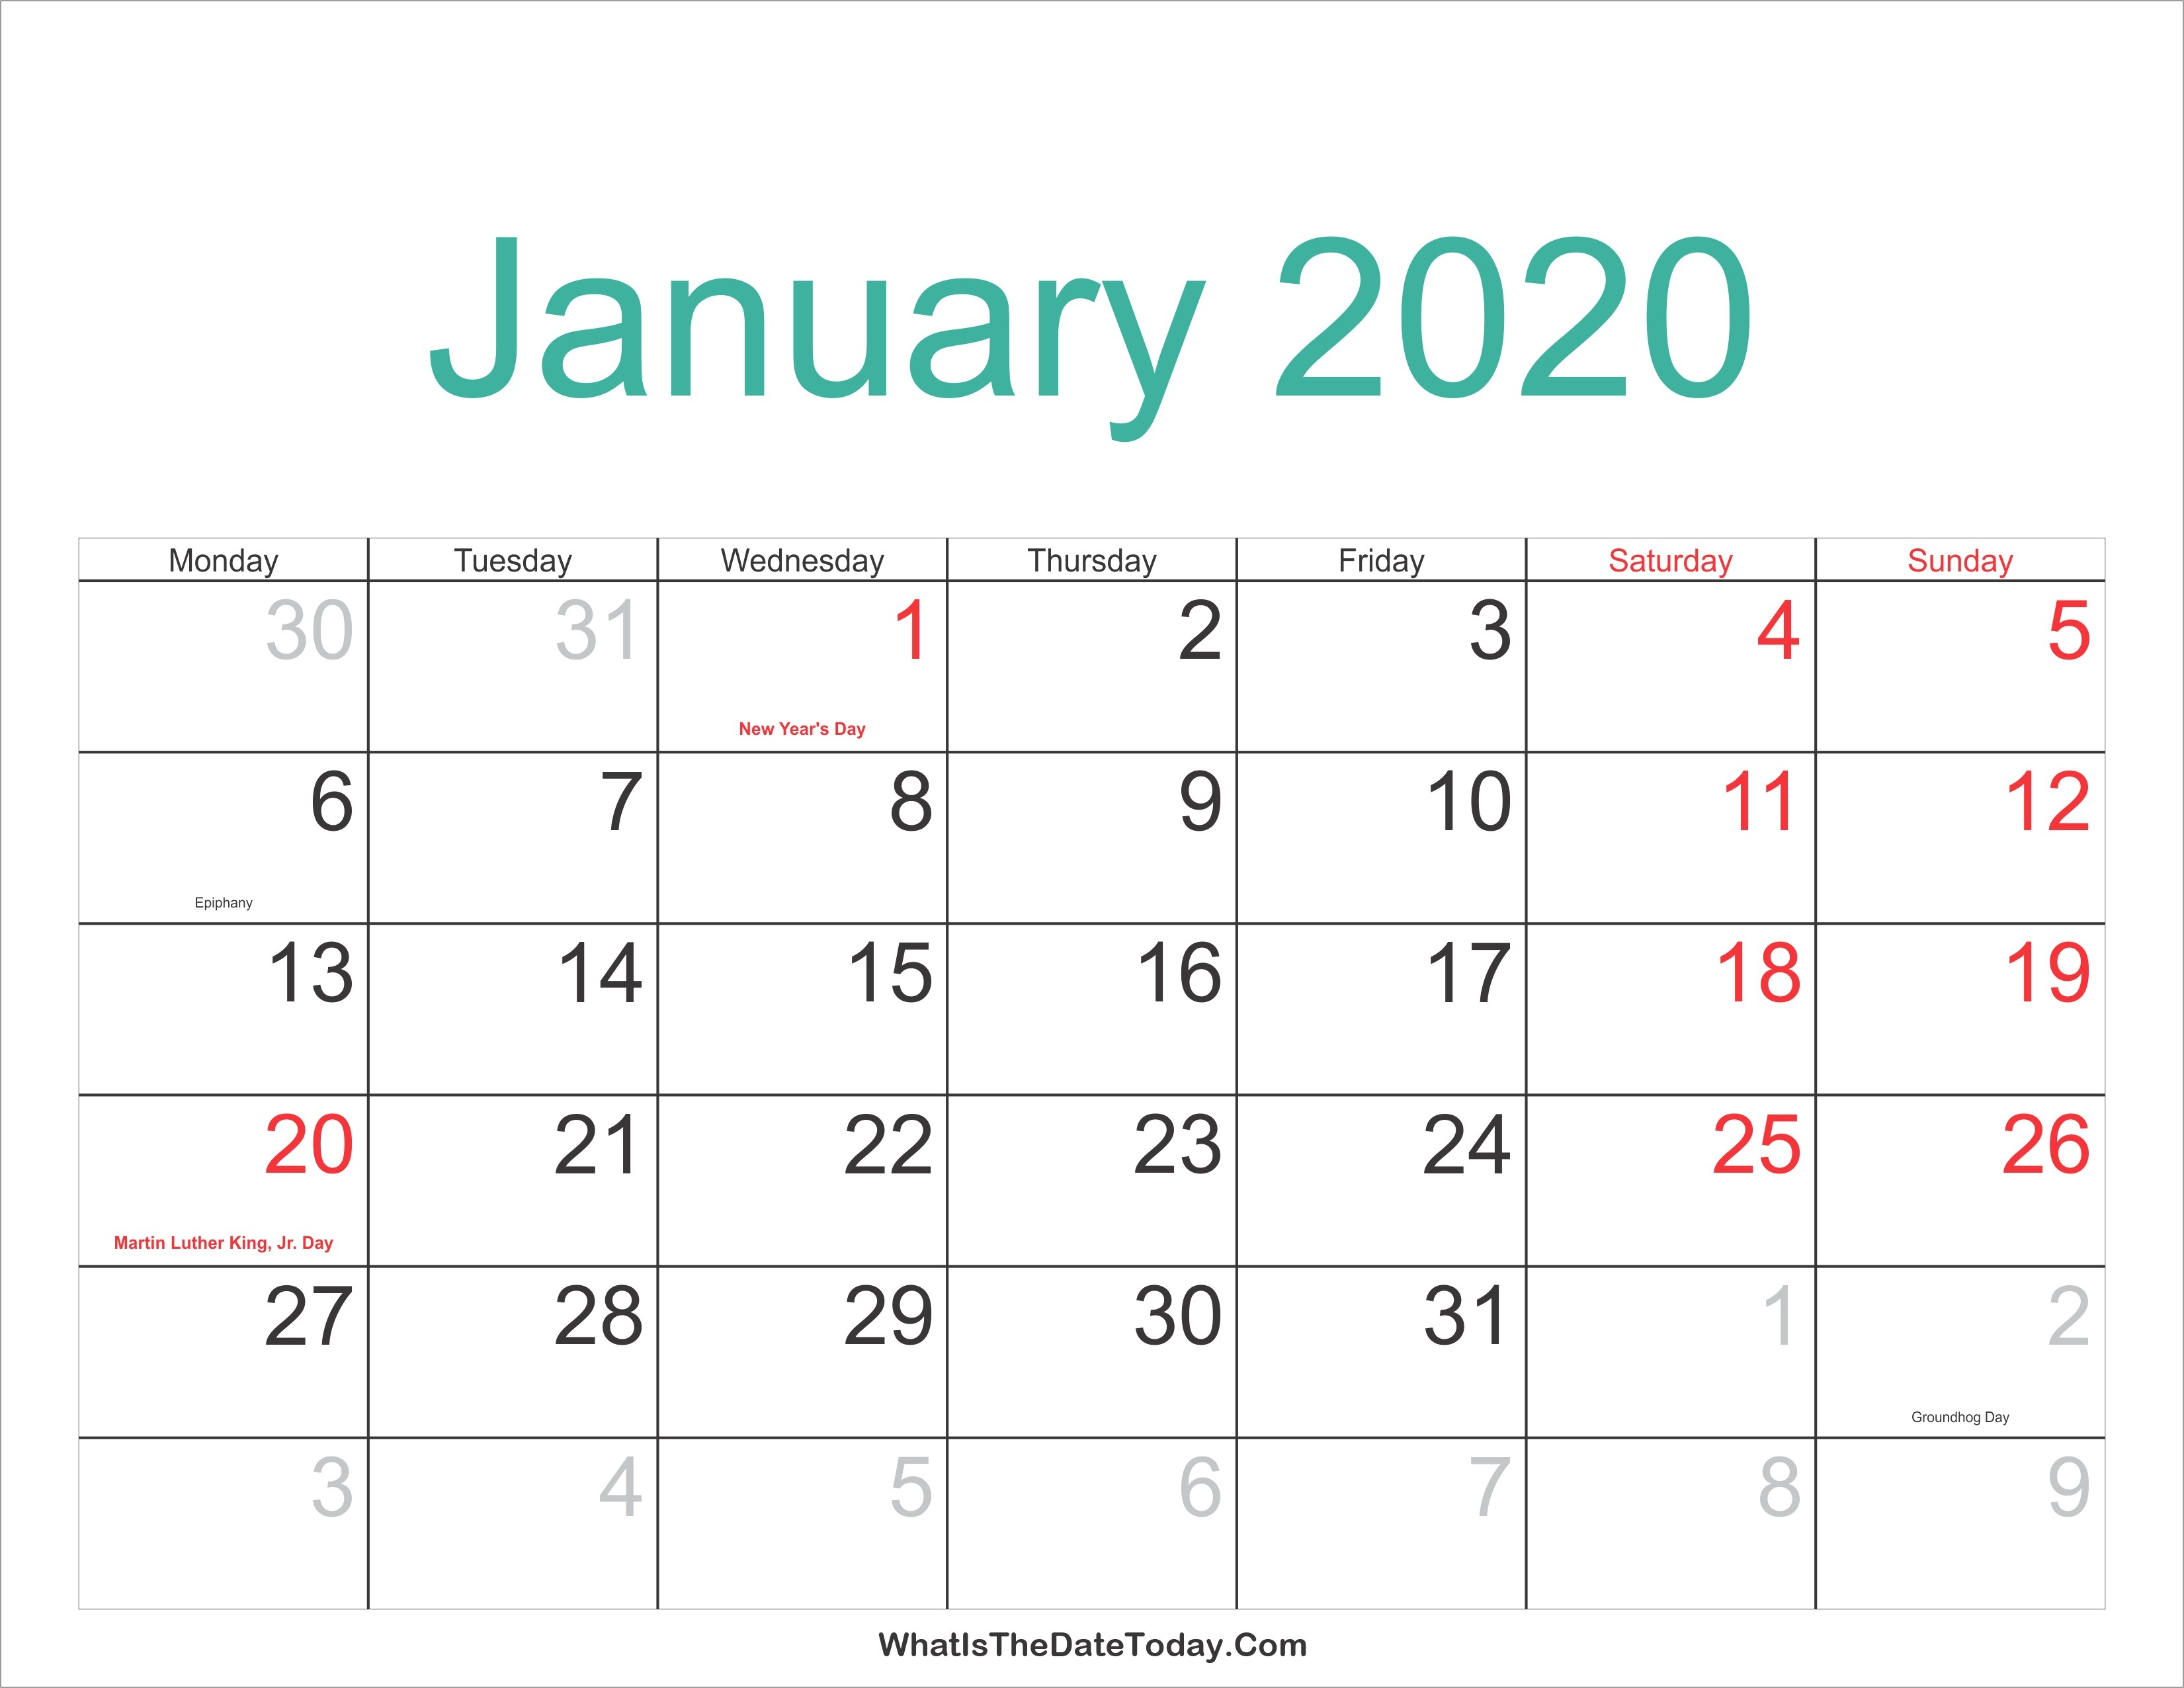 January 2020 Calendar Printable Holidays Full | Jcreview-January 2020 Calendar With Holidays